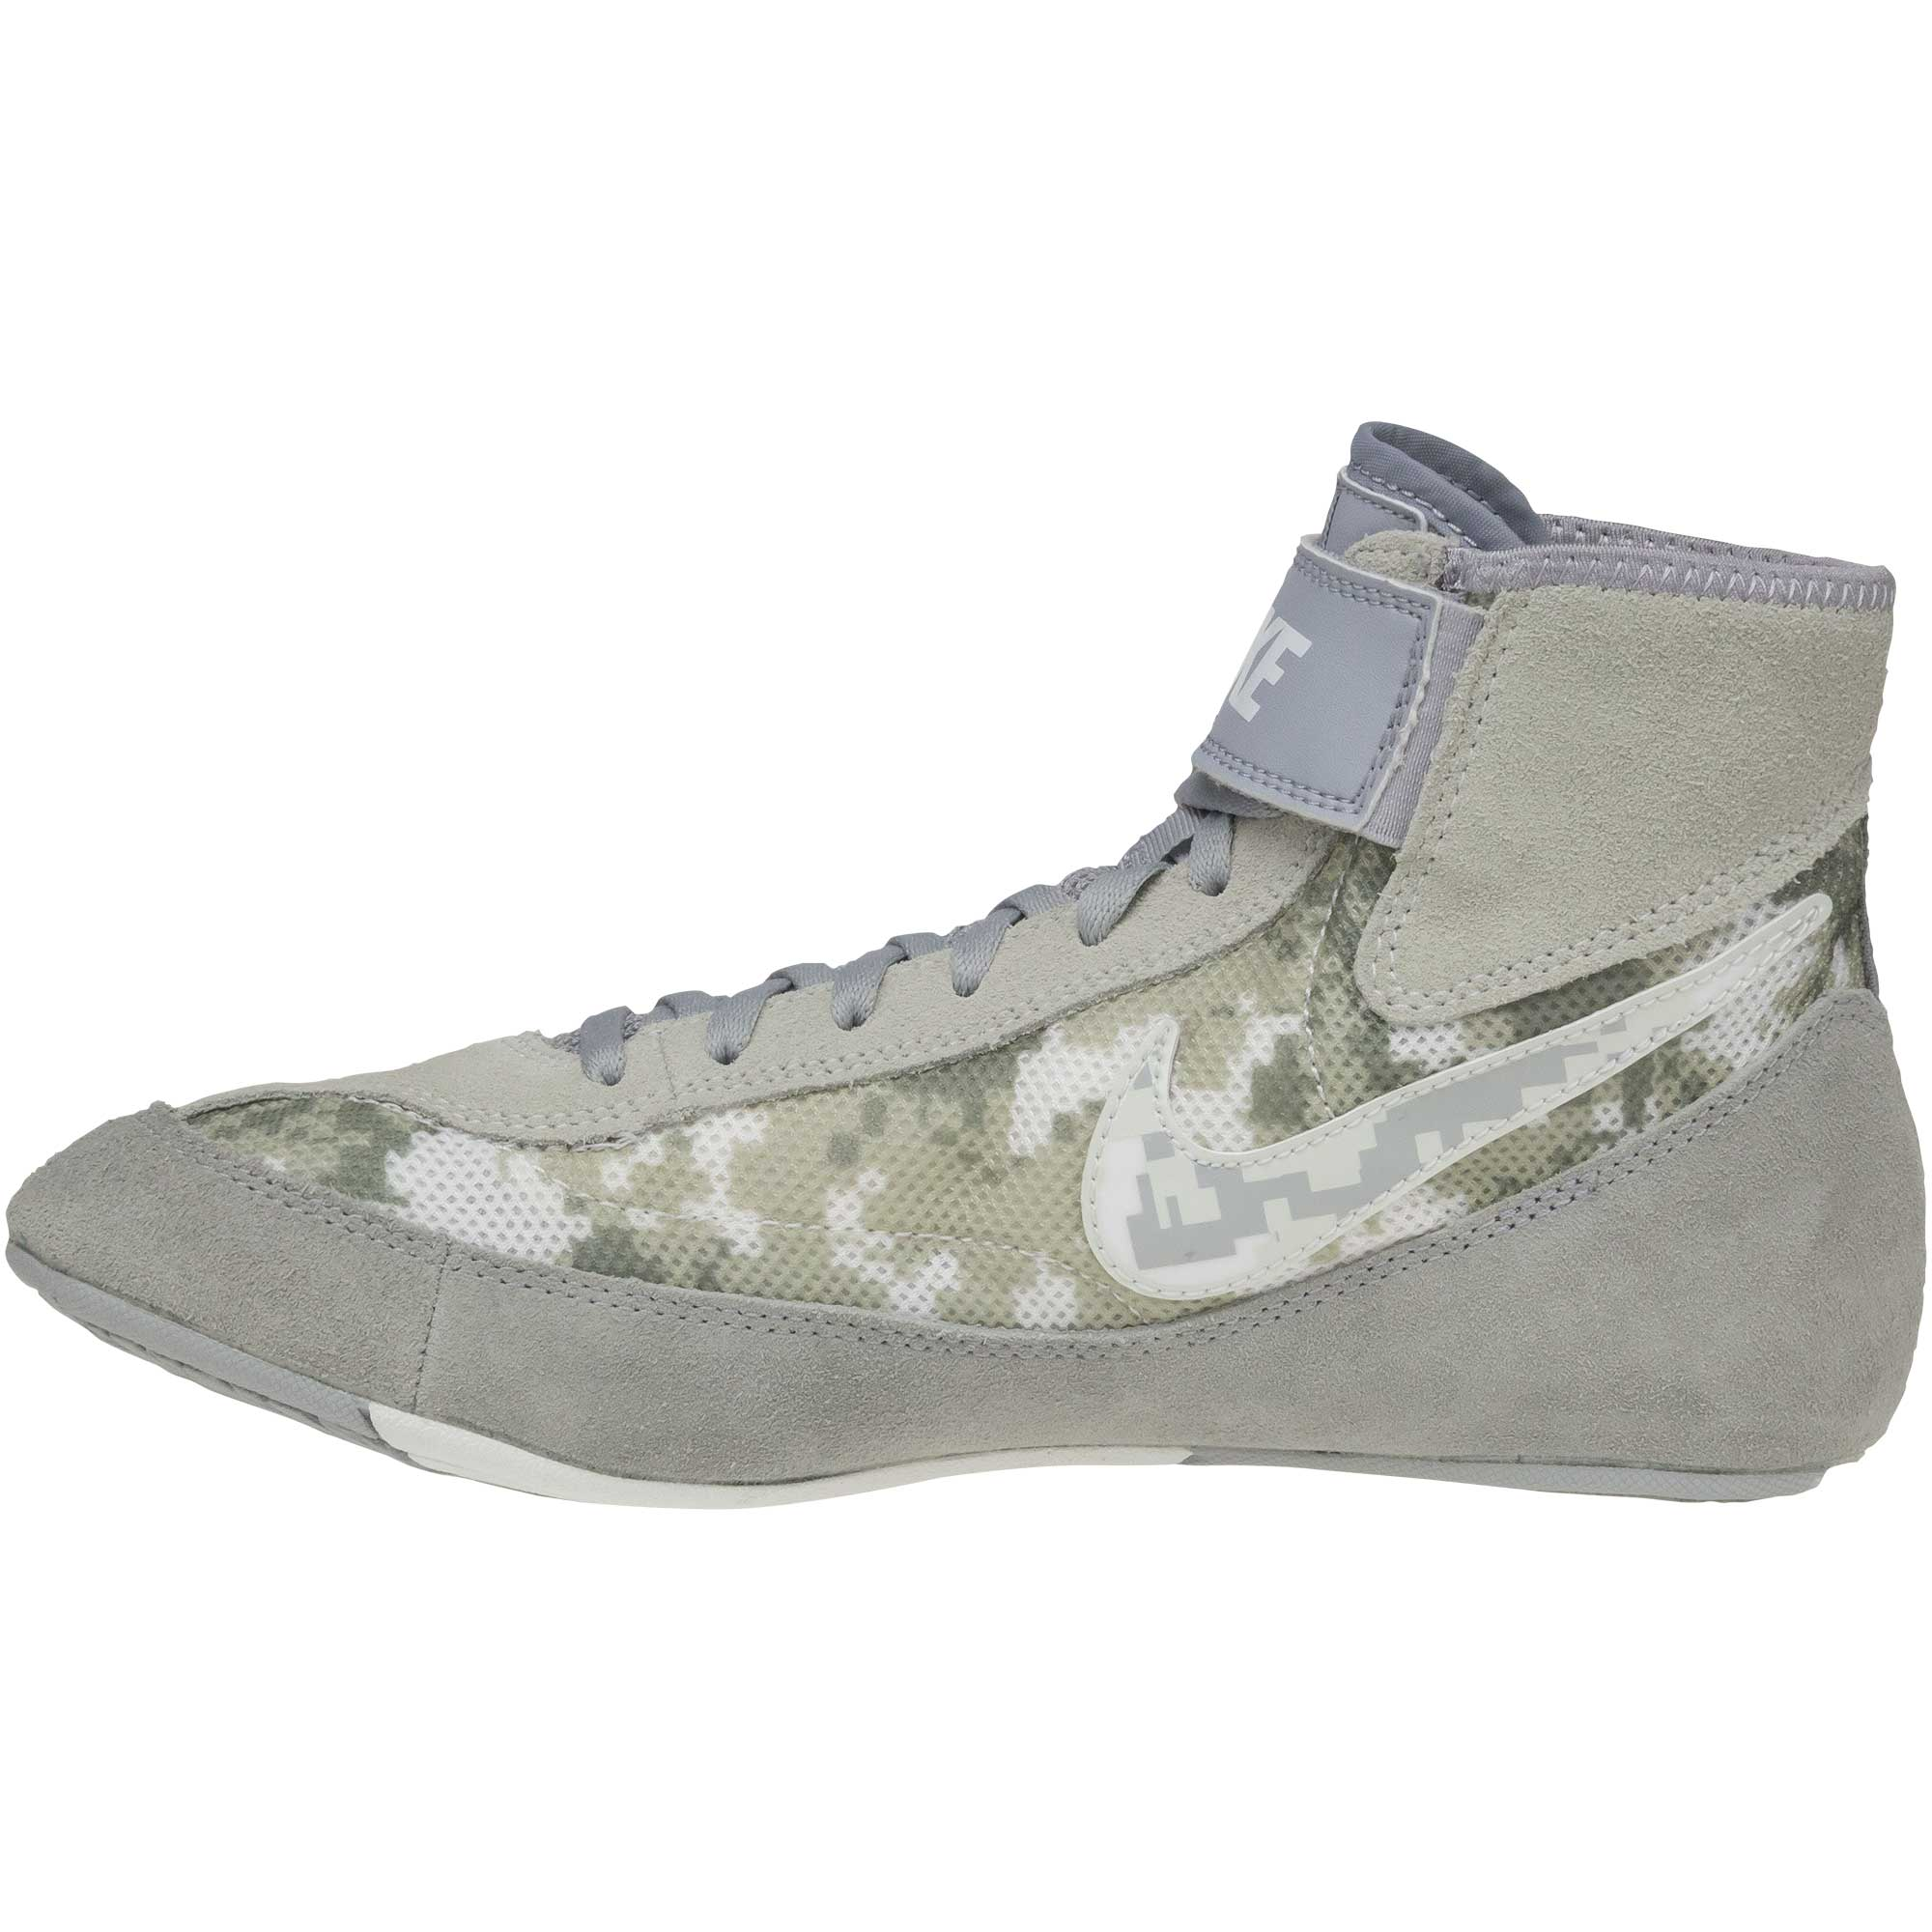 0e1eafdc9ef9e NIKE SPEEDSWEEP VII Ask us a question about this product